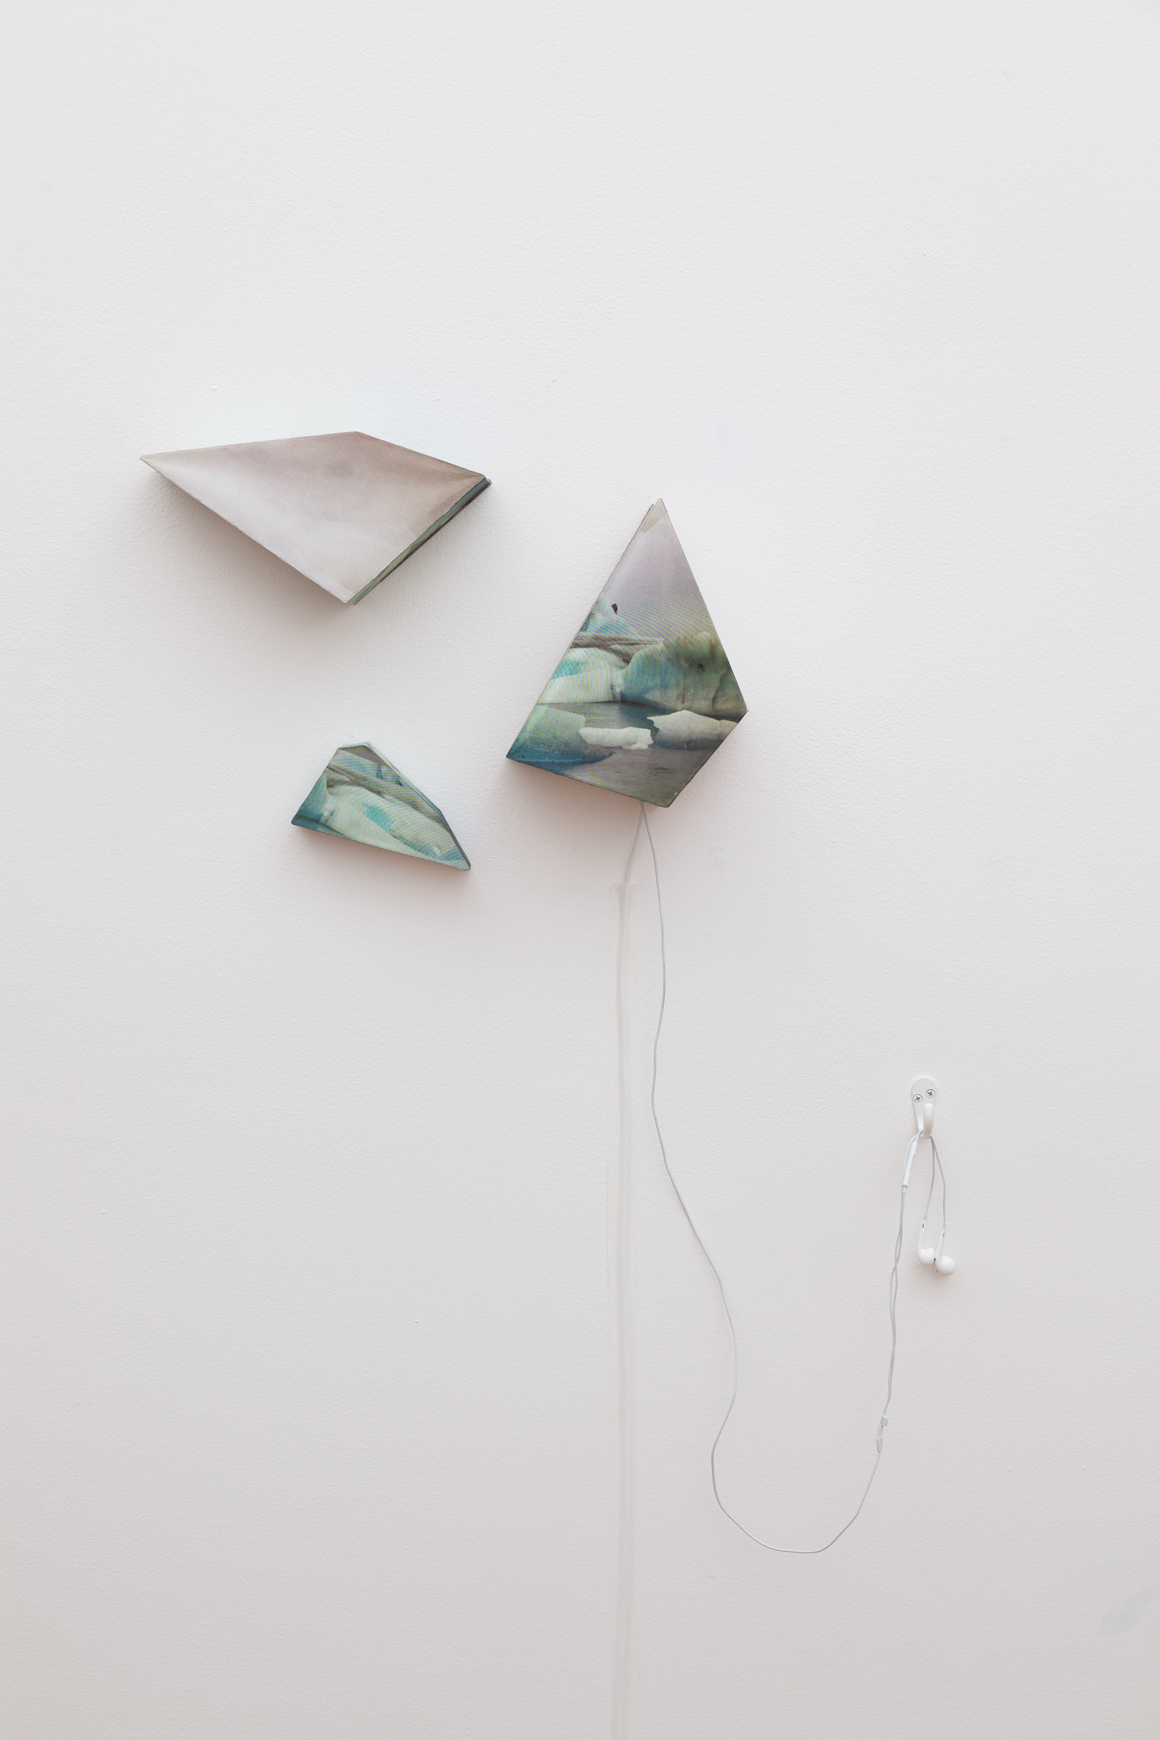 "<p><span class=""name"">Nicole Pietrantoni </span><br><em>No Reason to Panic</em><span class='media'>Paper boxes, electronics</span>dimensions variable<br>2015<br></p>"